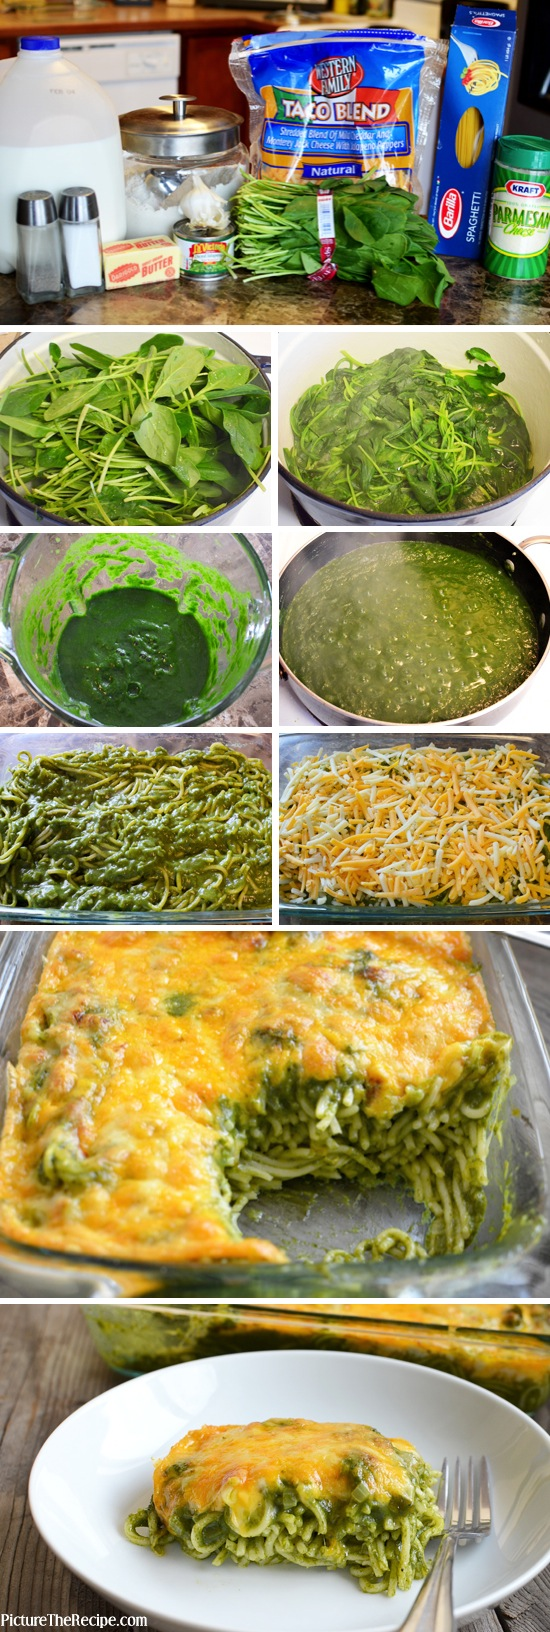 Cheesy-Spinach-Pasta-Bake